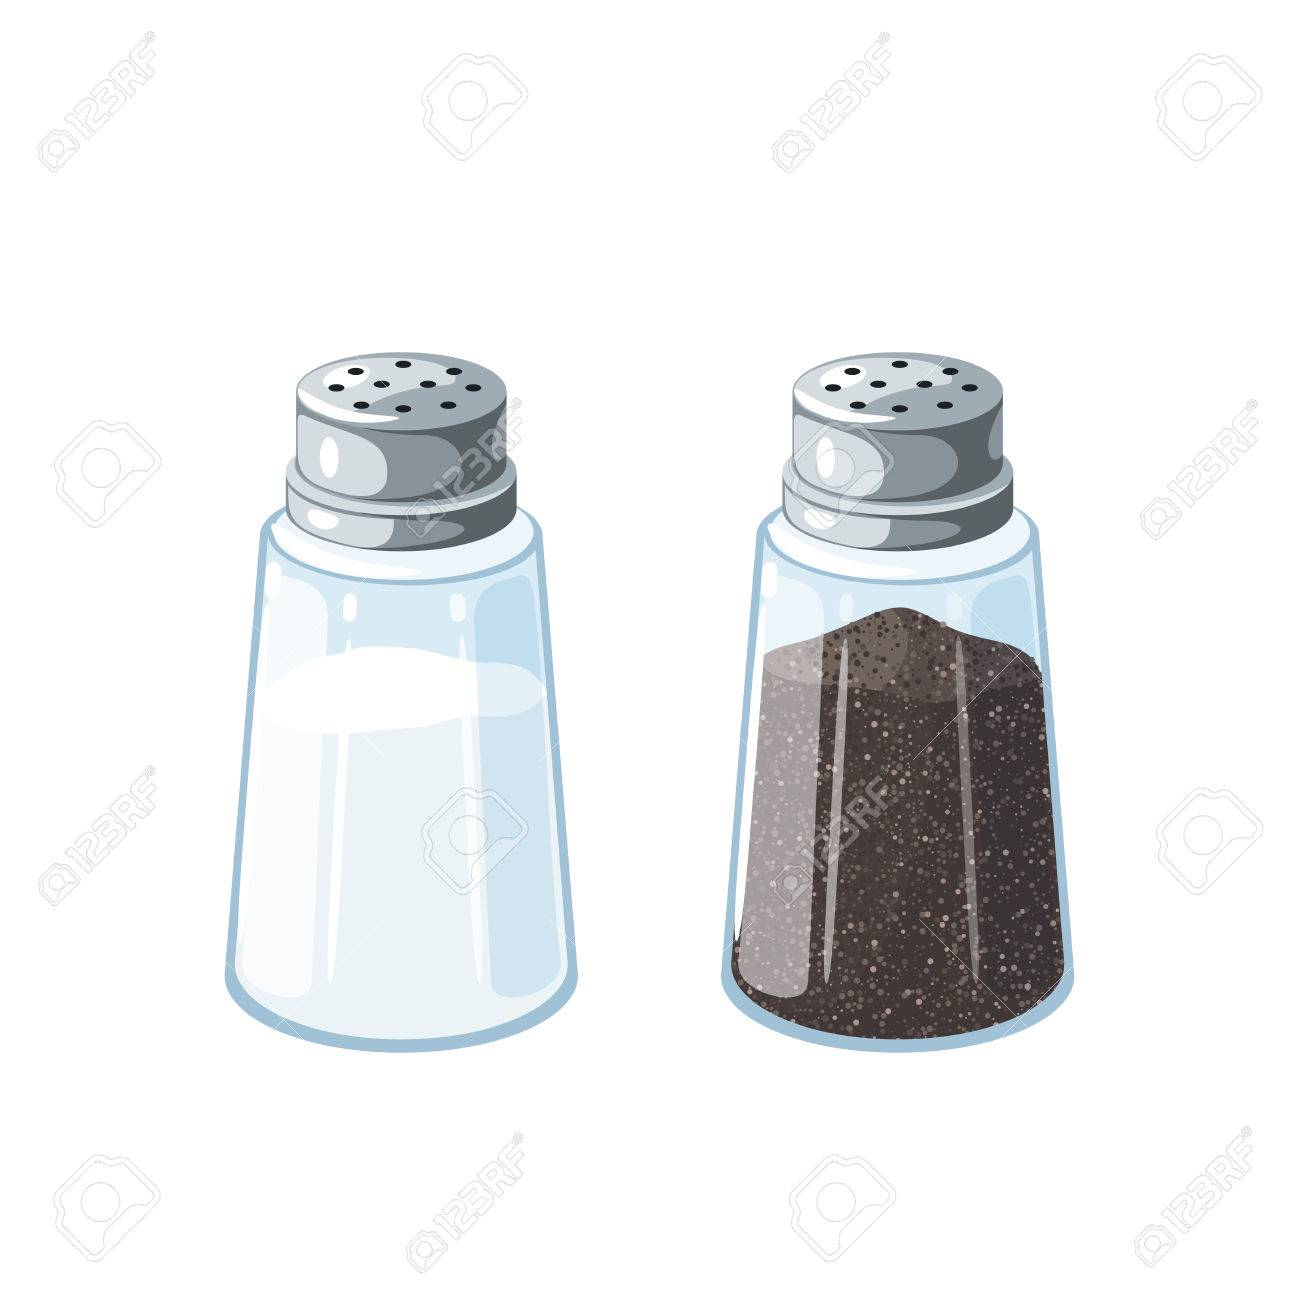 Salt and pepper. Pair of transparent glass shaker with metal cap. Vector illustration cartoon flat icon isolated on white. - 83383270